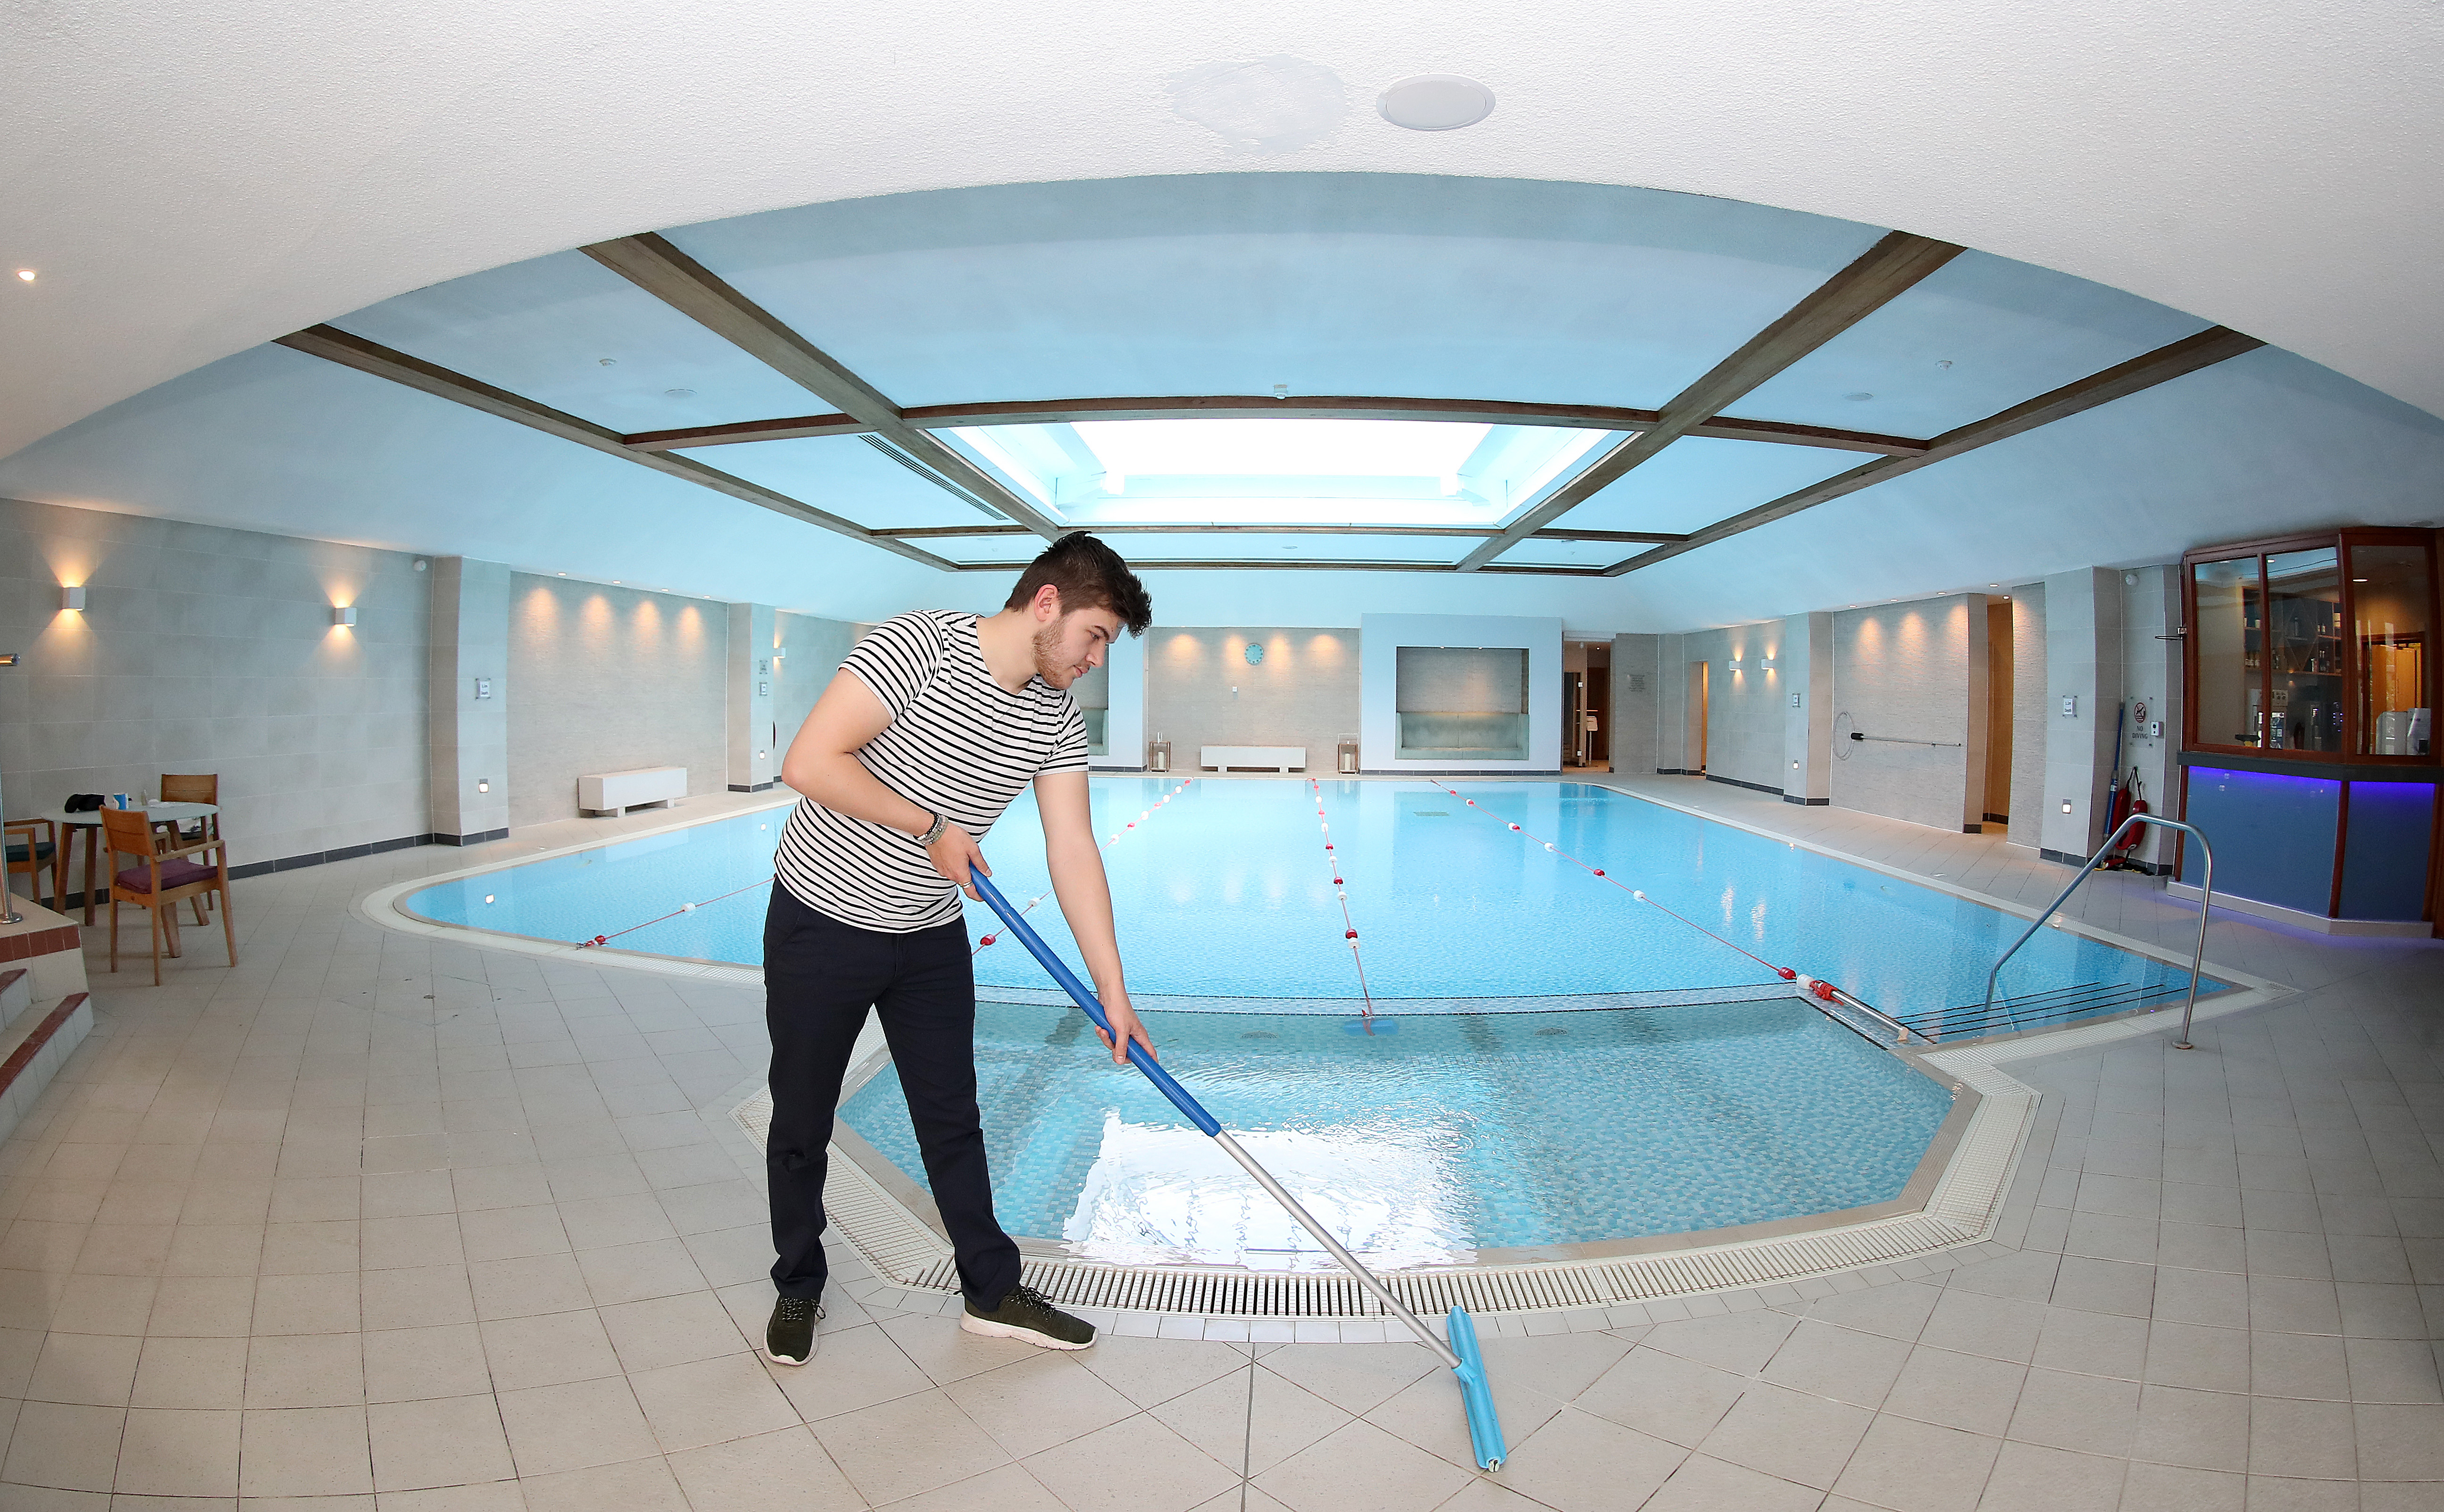 <p>Spa assistant Kieran Wilson cleans the pool deck at Cottons Hotel and Spa in Knutsford, Cheshire, ahead of reopening on Monday 12 April, as the second stage of England's lockdown roadmap begins. Picture date: Saturday April 10, 2021.</p>